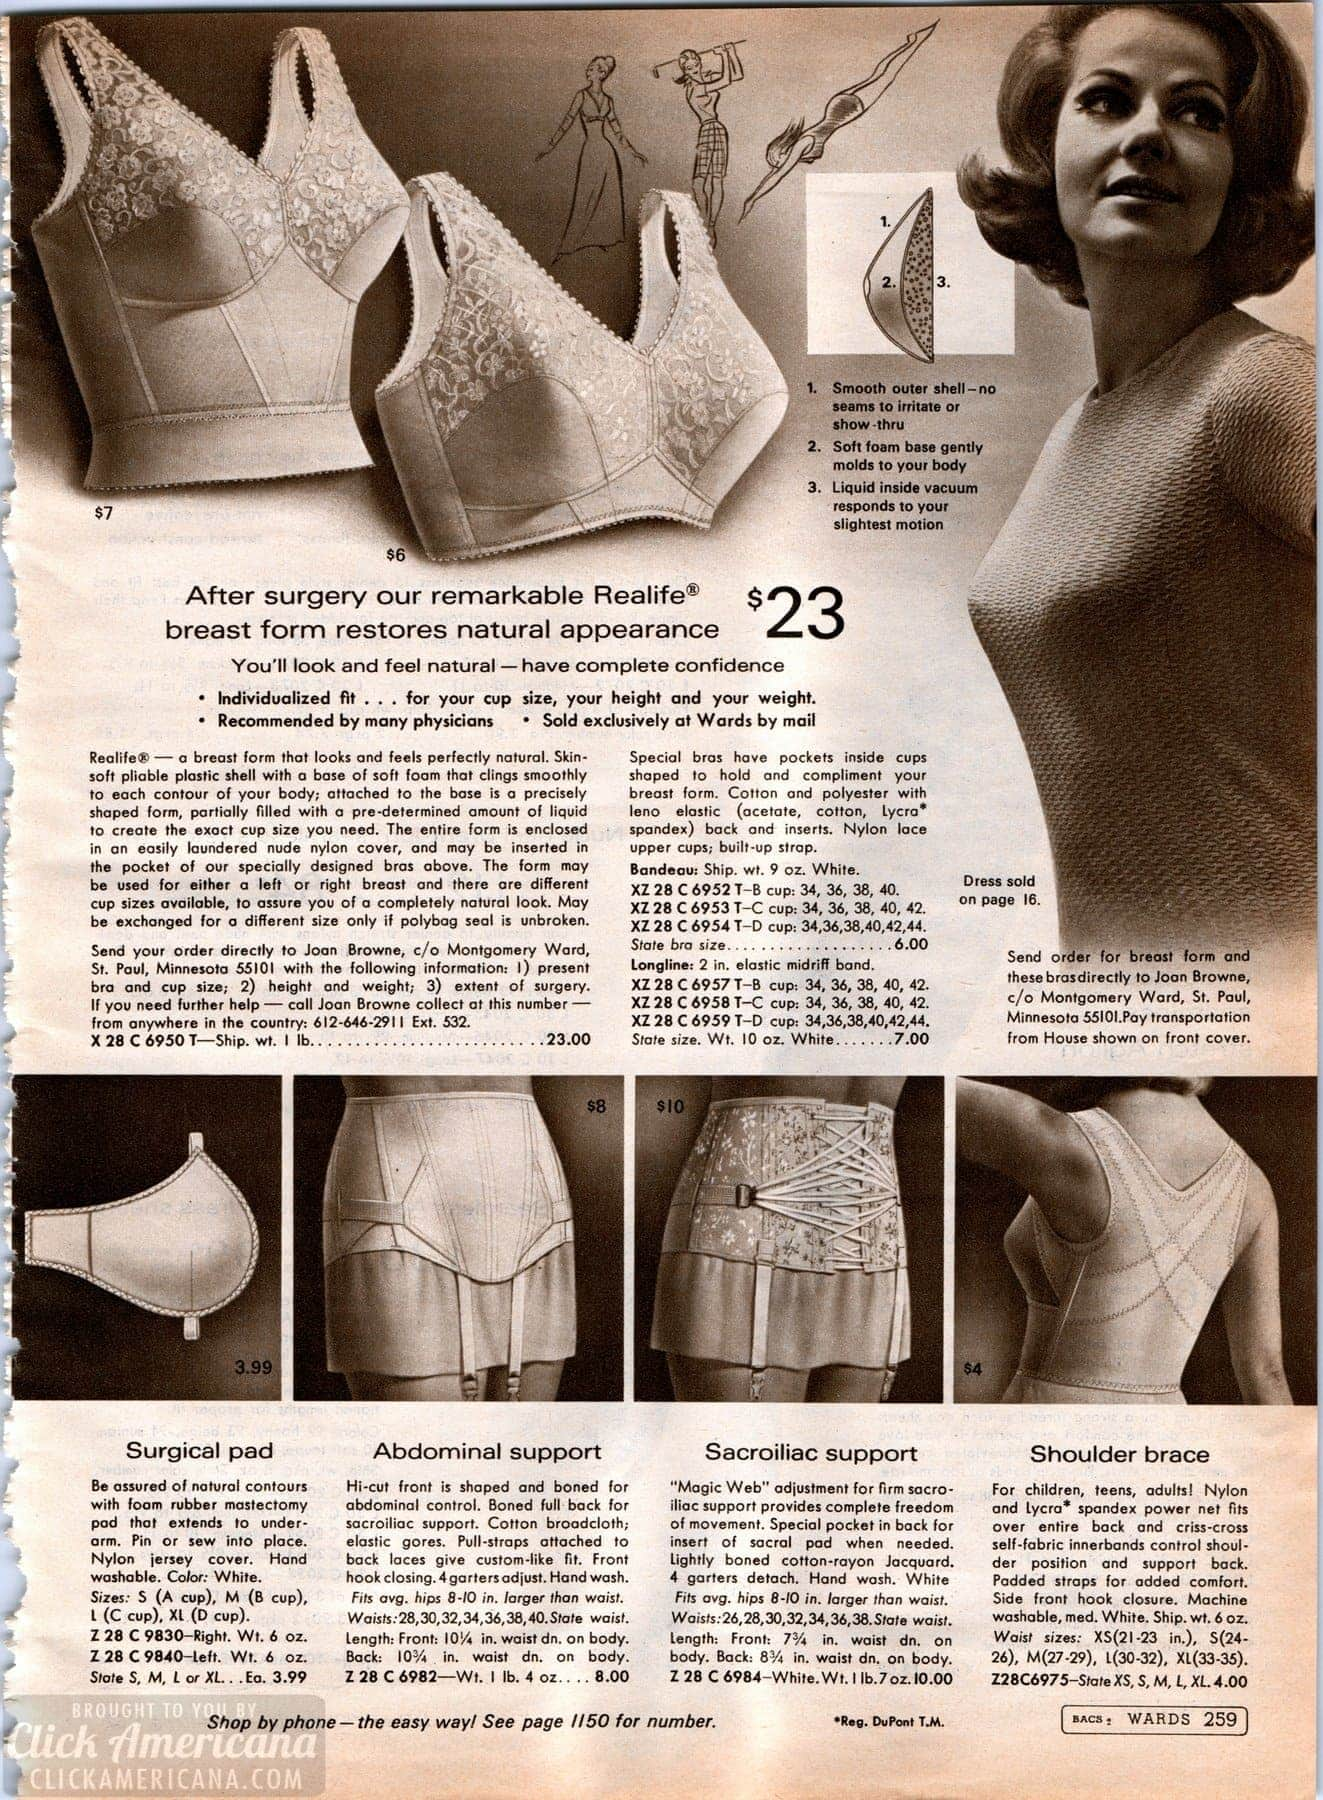 Medical lingerie from the '60s - back support and post-mastectomy bras